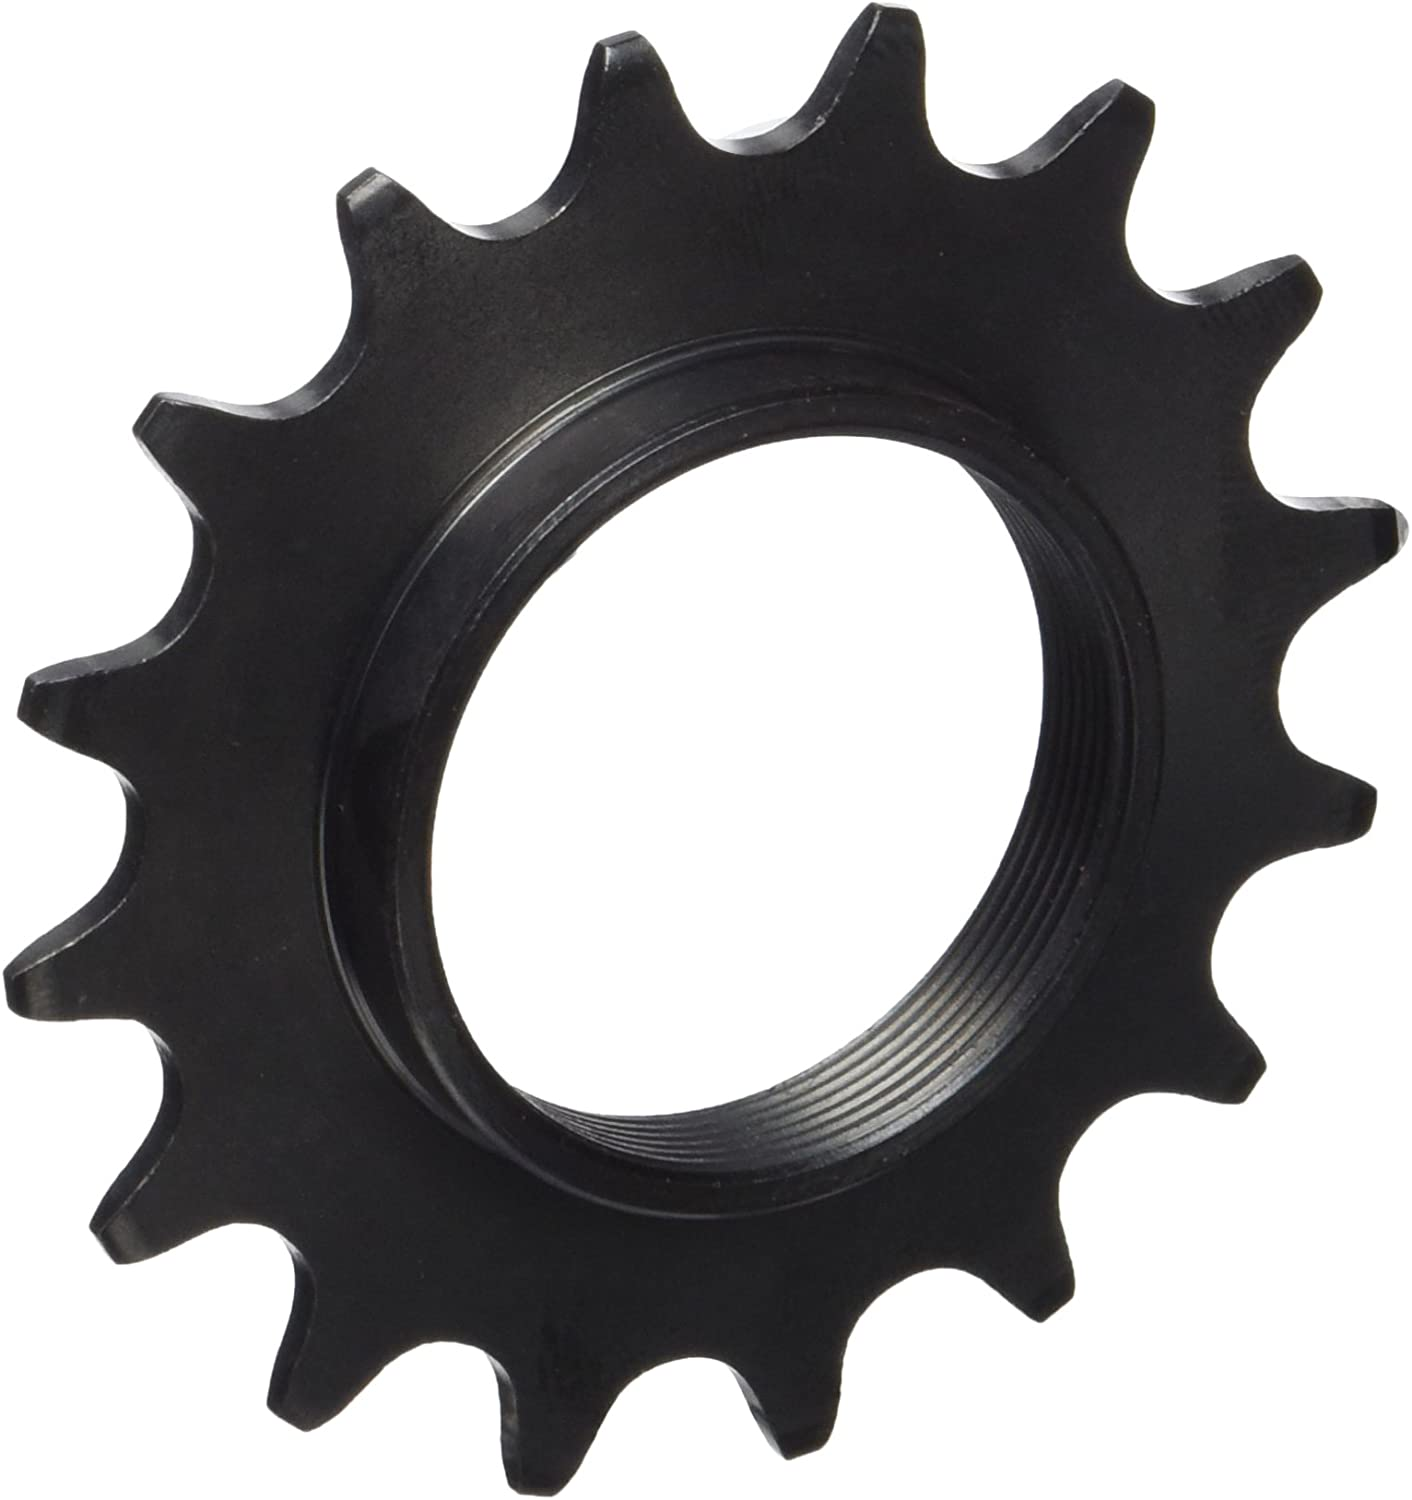 SHIMANO 7600Dura Ace Track Direct sale of manufacturer New life Sprocket 2x 13T 8Inch 1